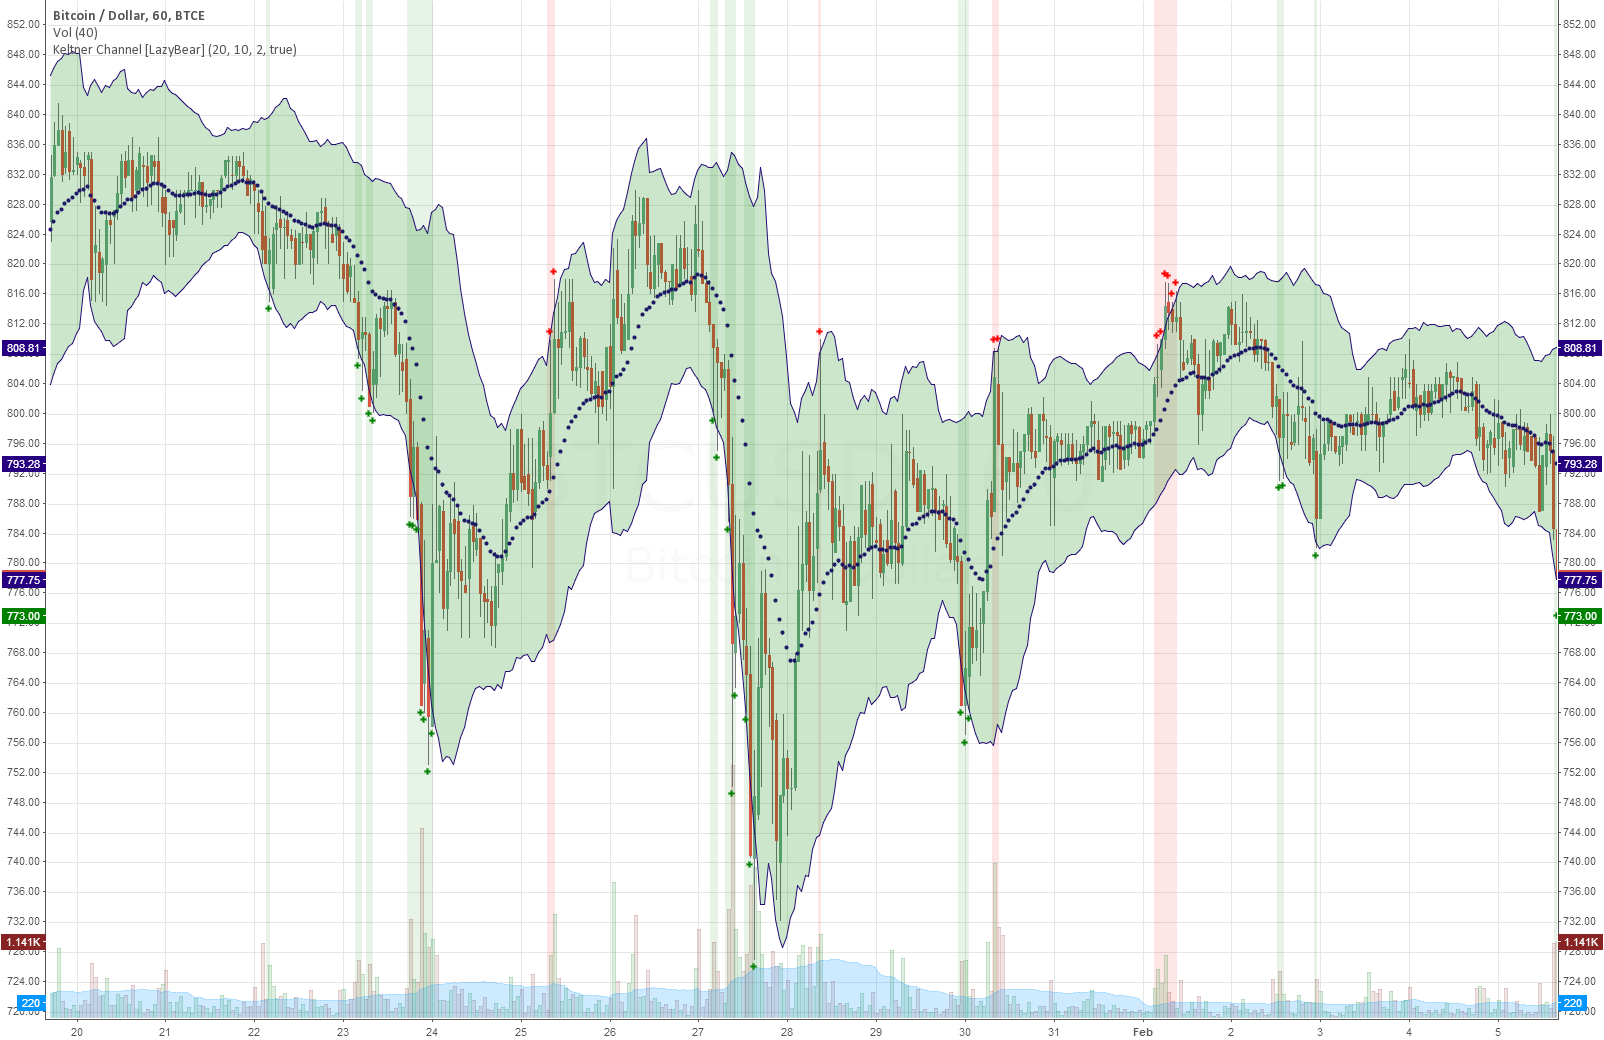 Keltner Channel with auto highlighting of Bear/Bull reversals